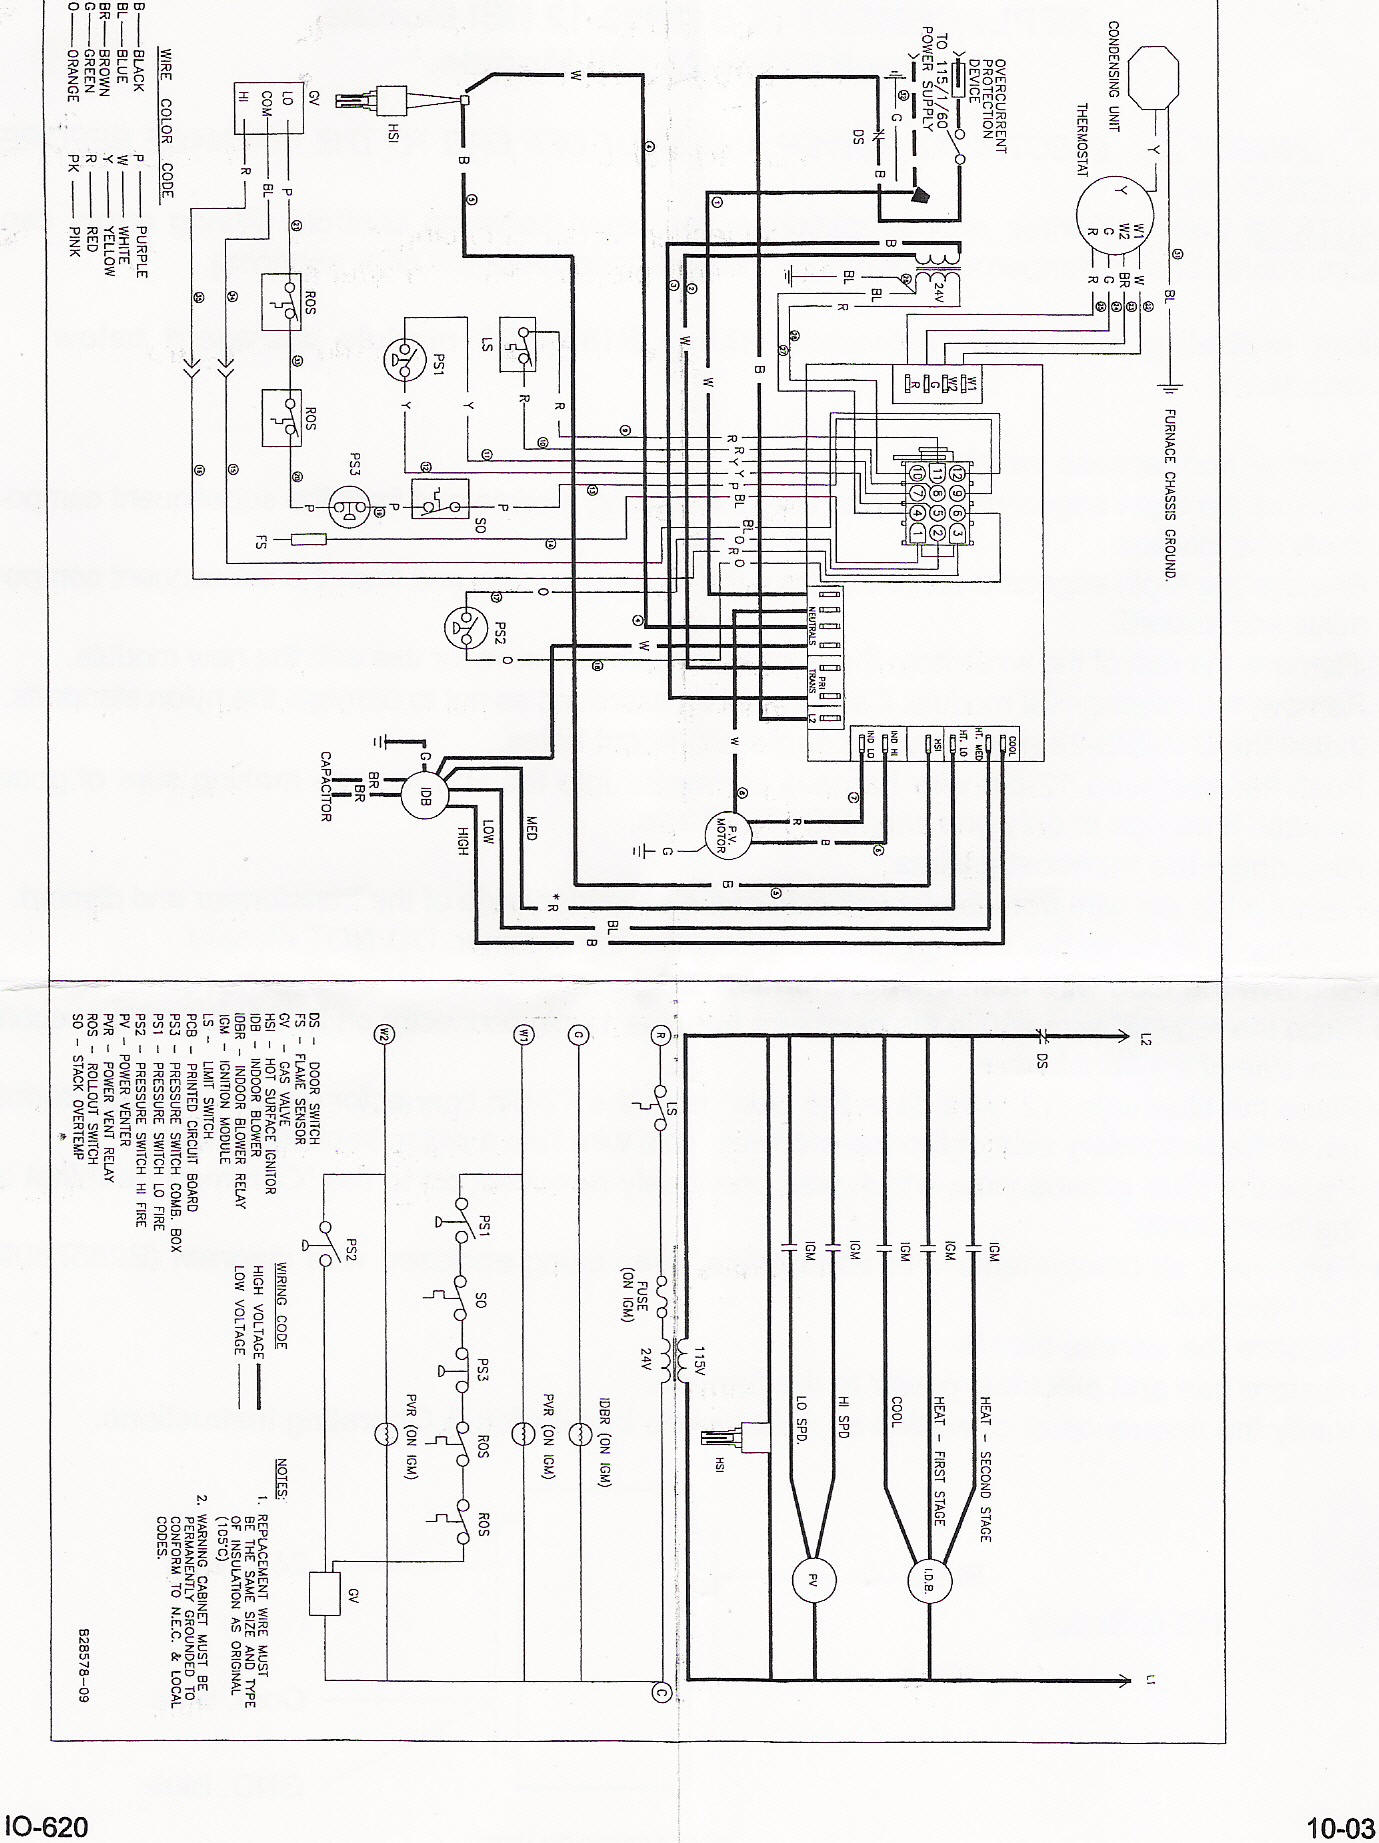 goodma2 instr goodman control board b18099 23 instructions goodman furnace wiring diagram at letsshop.co